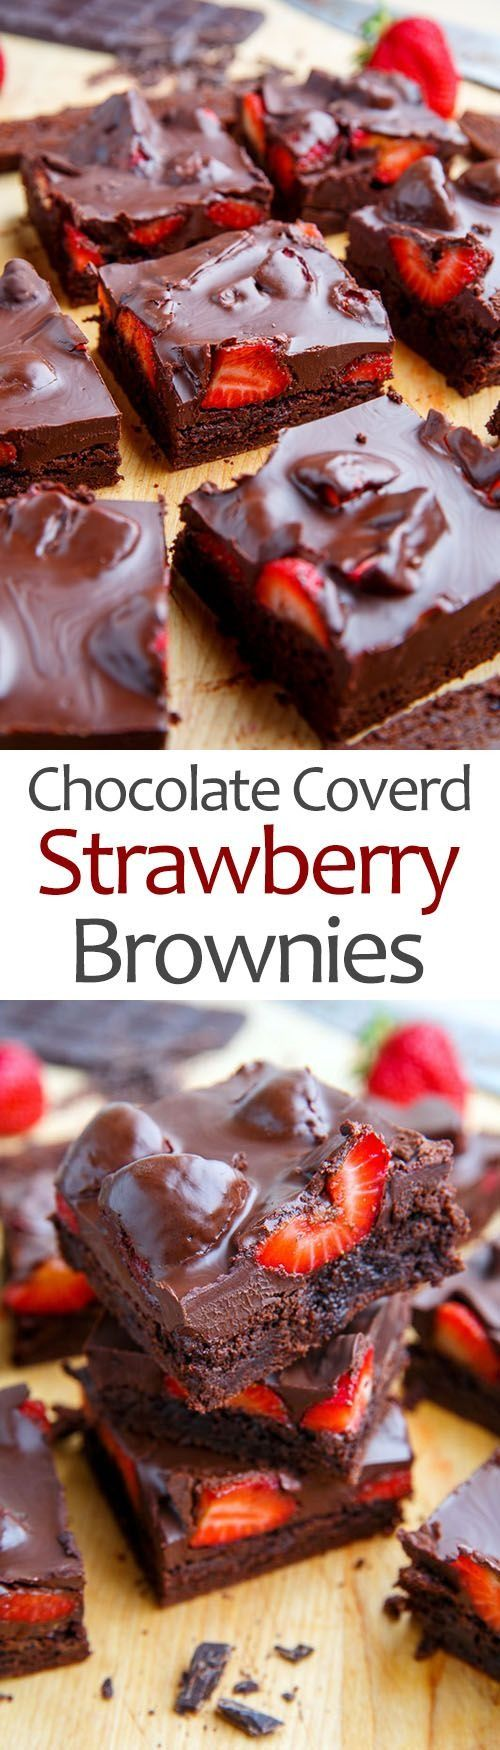 Chocolate covered strawberries + brownies = Valentine's Day for the win!